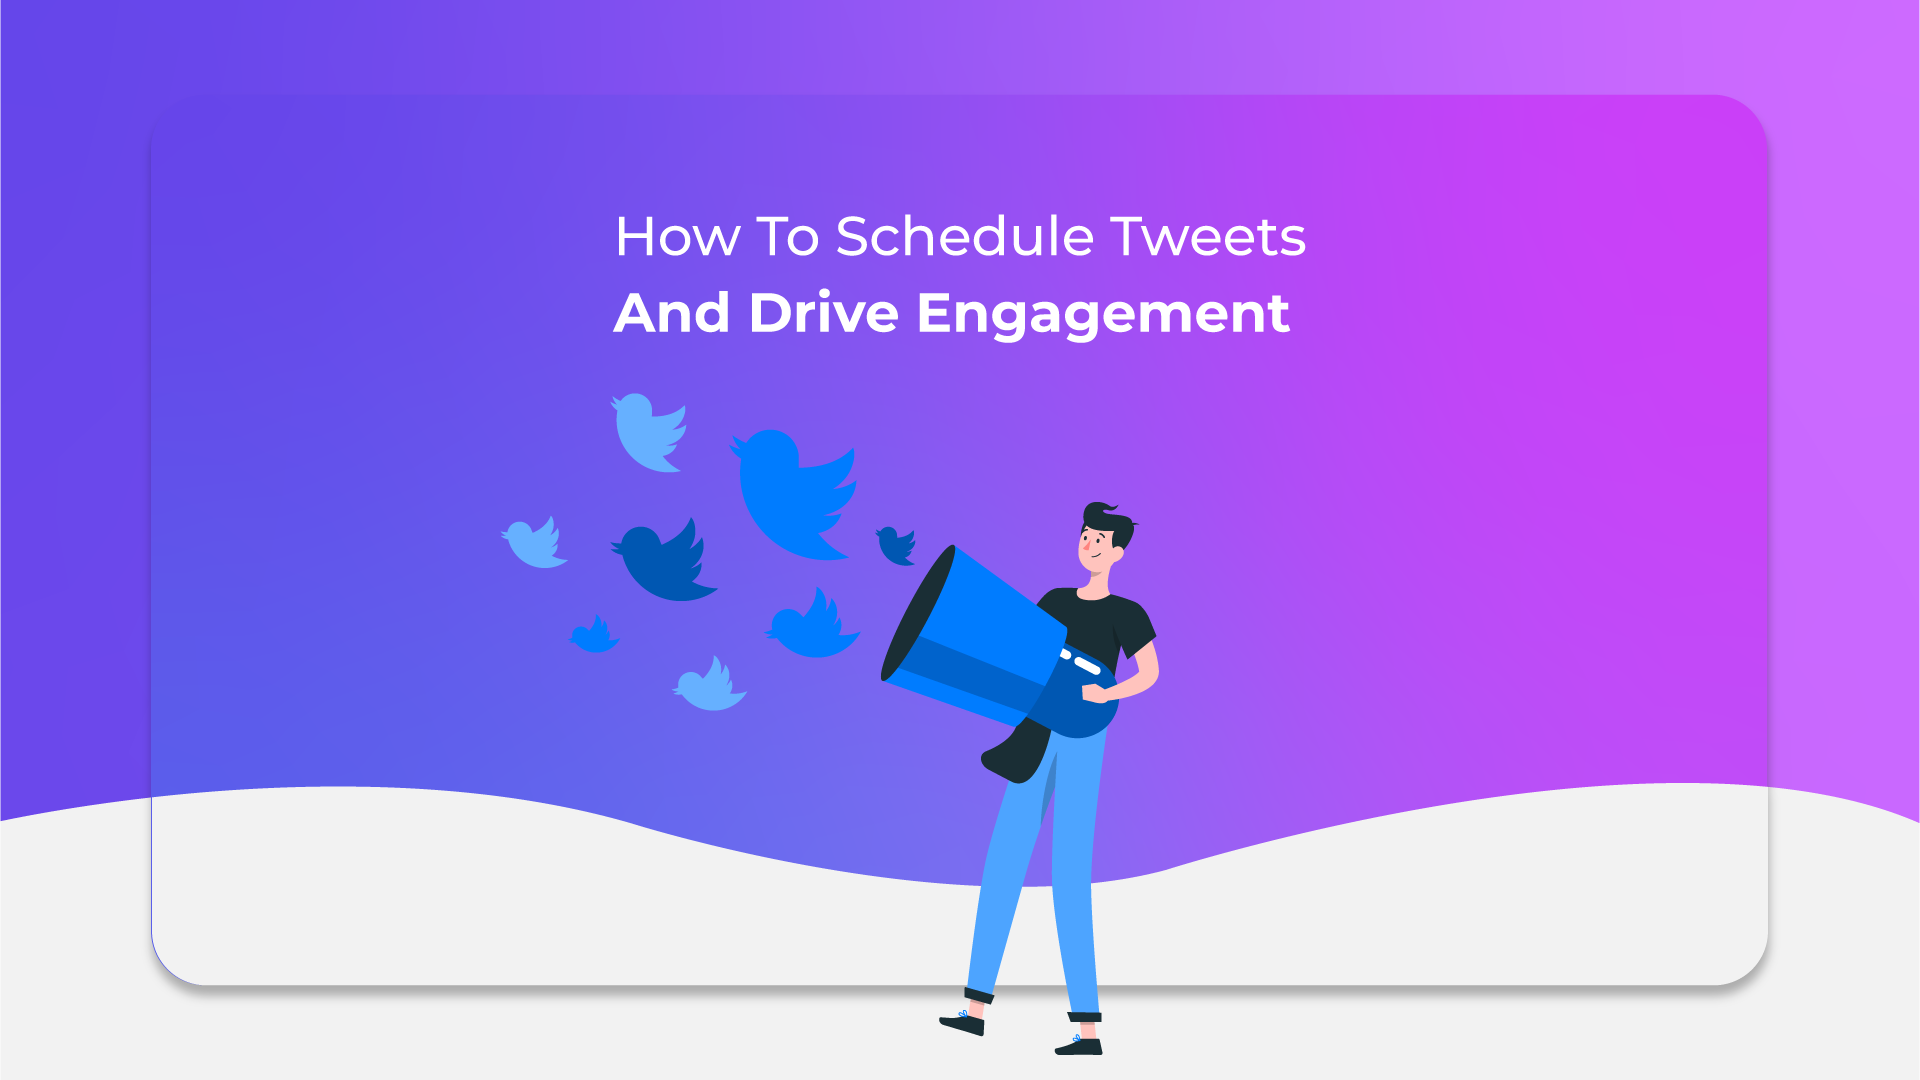 How To Schedule Tweets And Drive Engagement